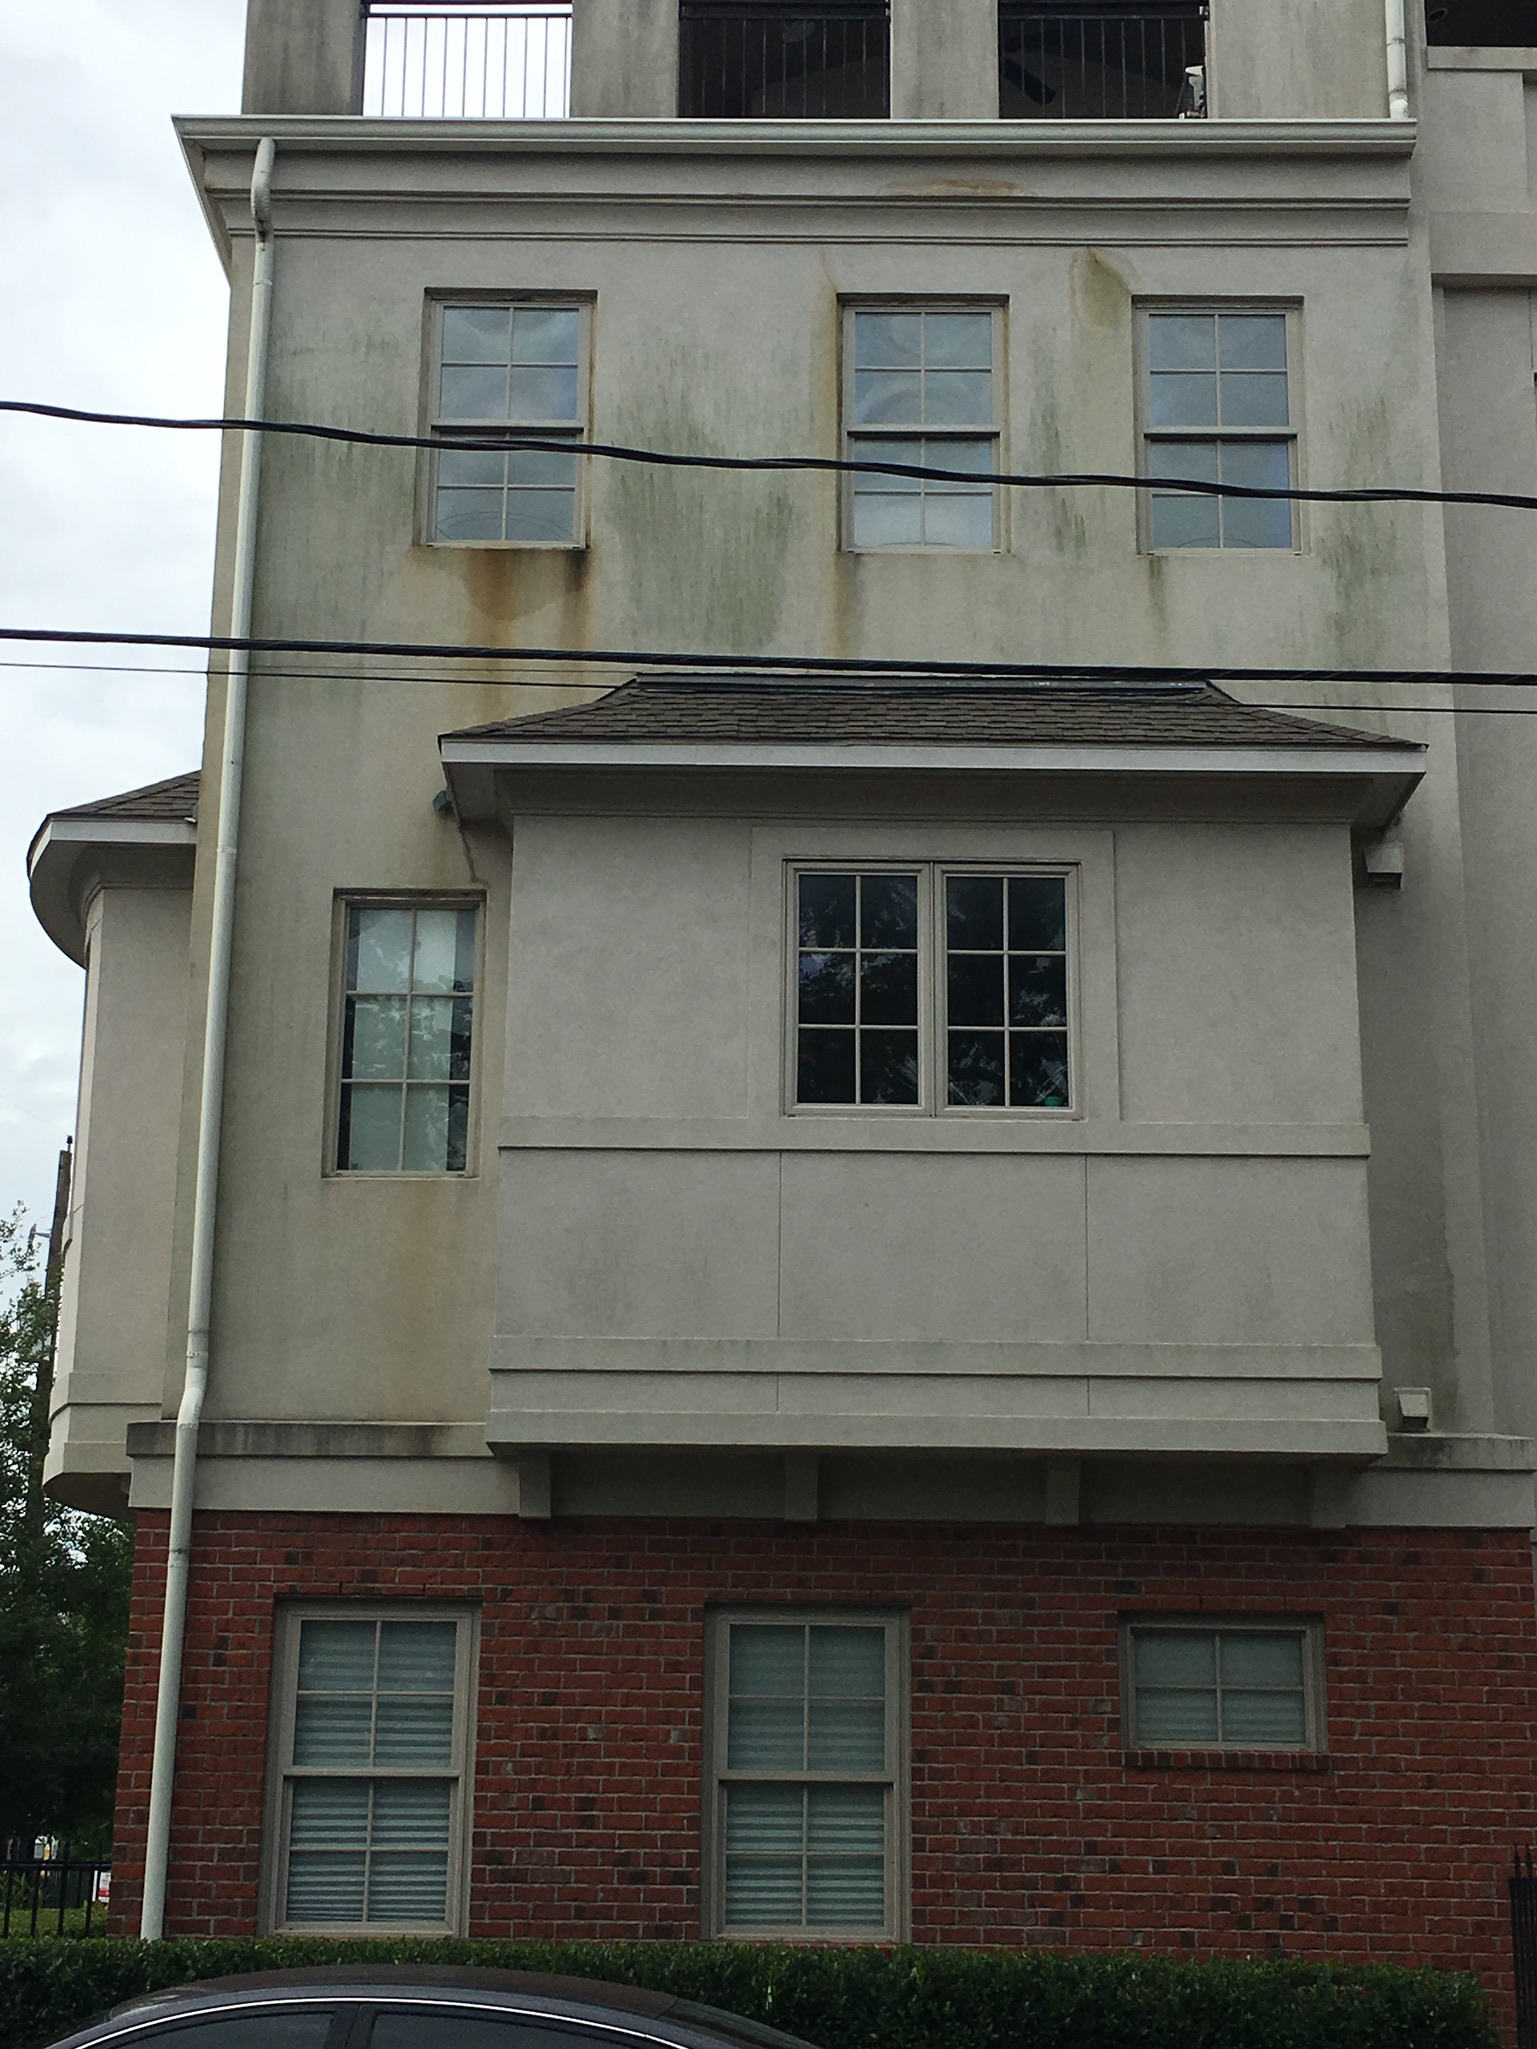 Things to consider when buying or building. Stucco does require maintenance.